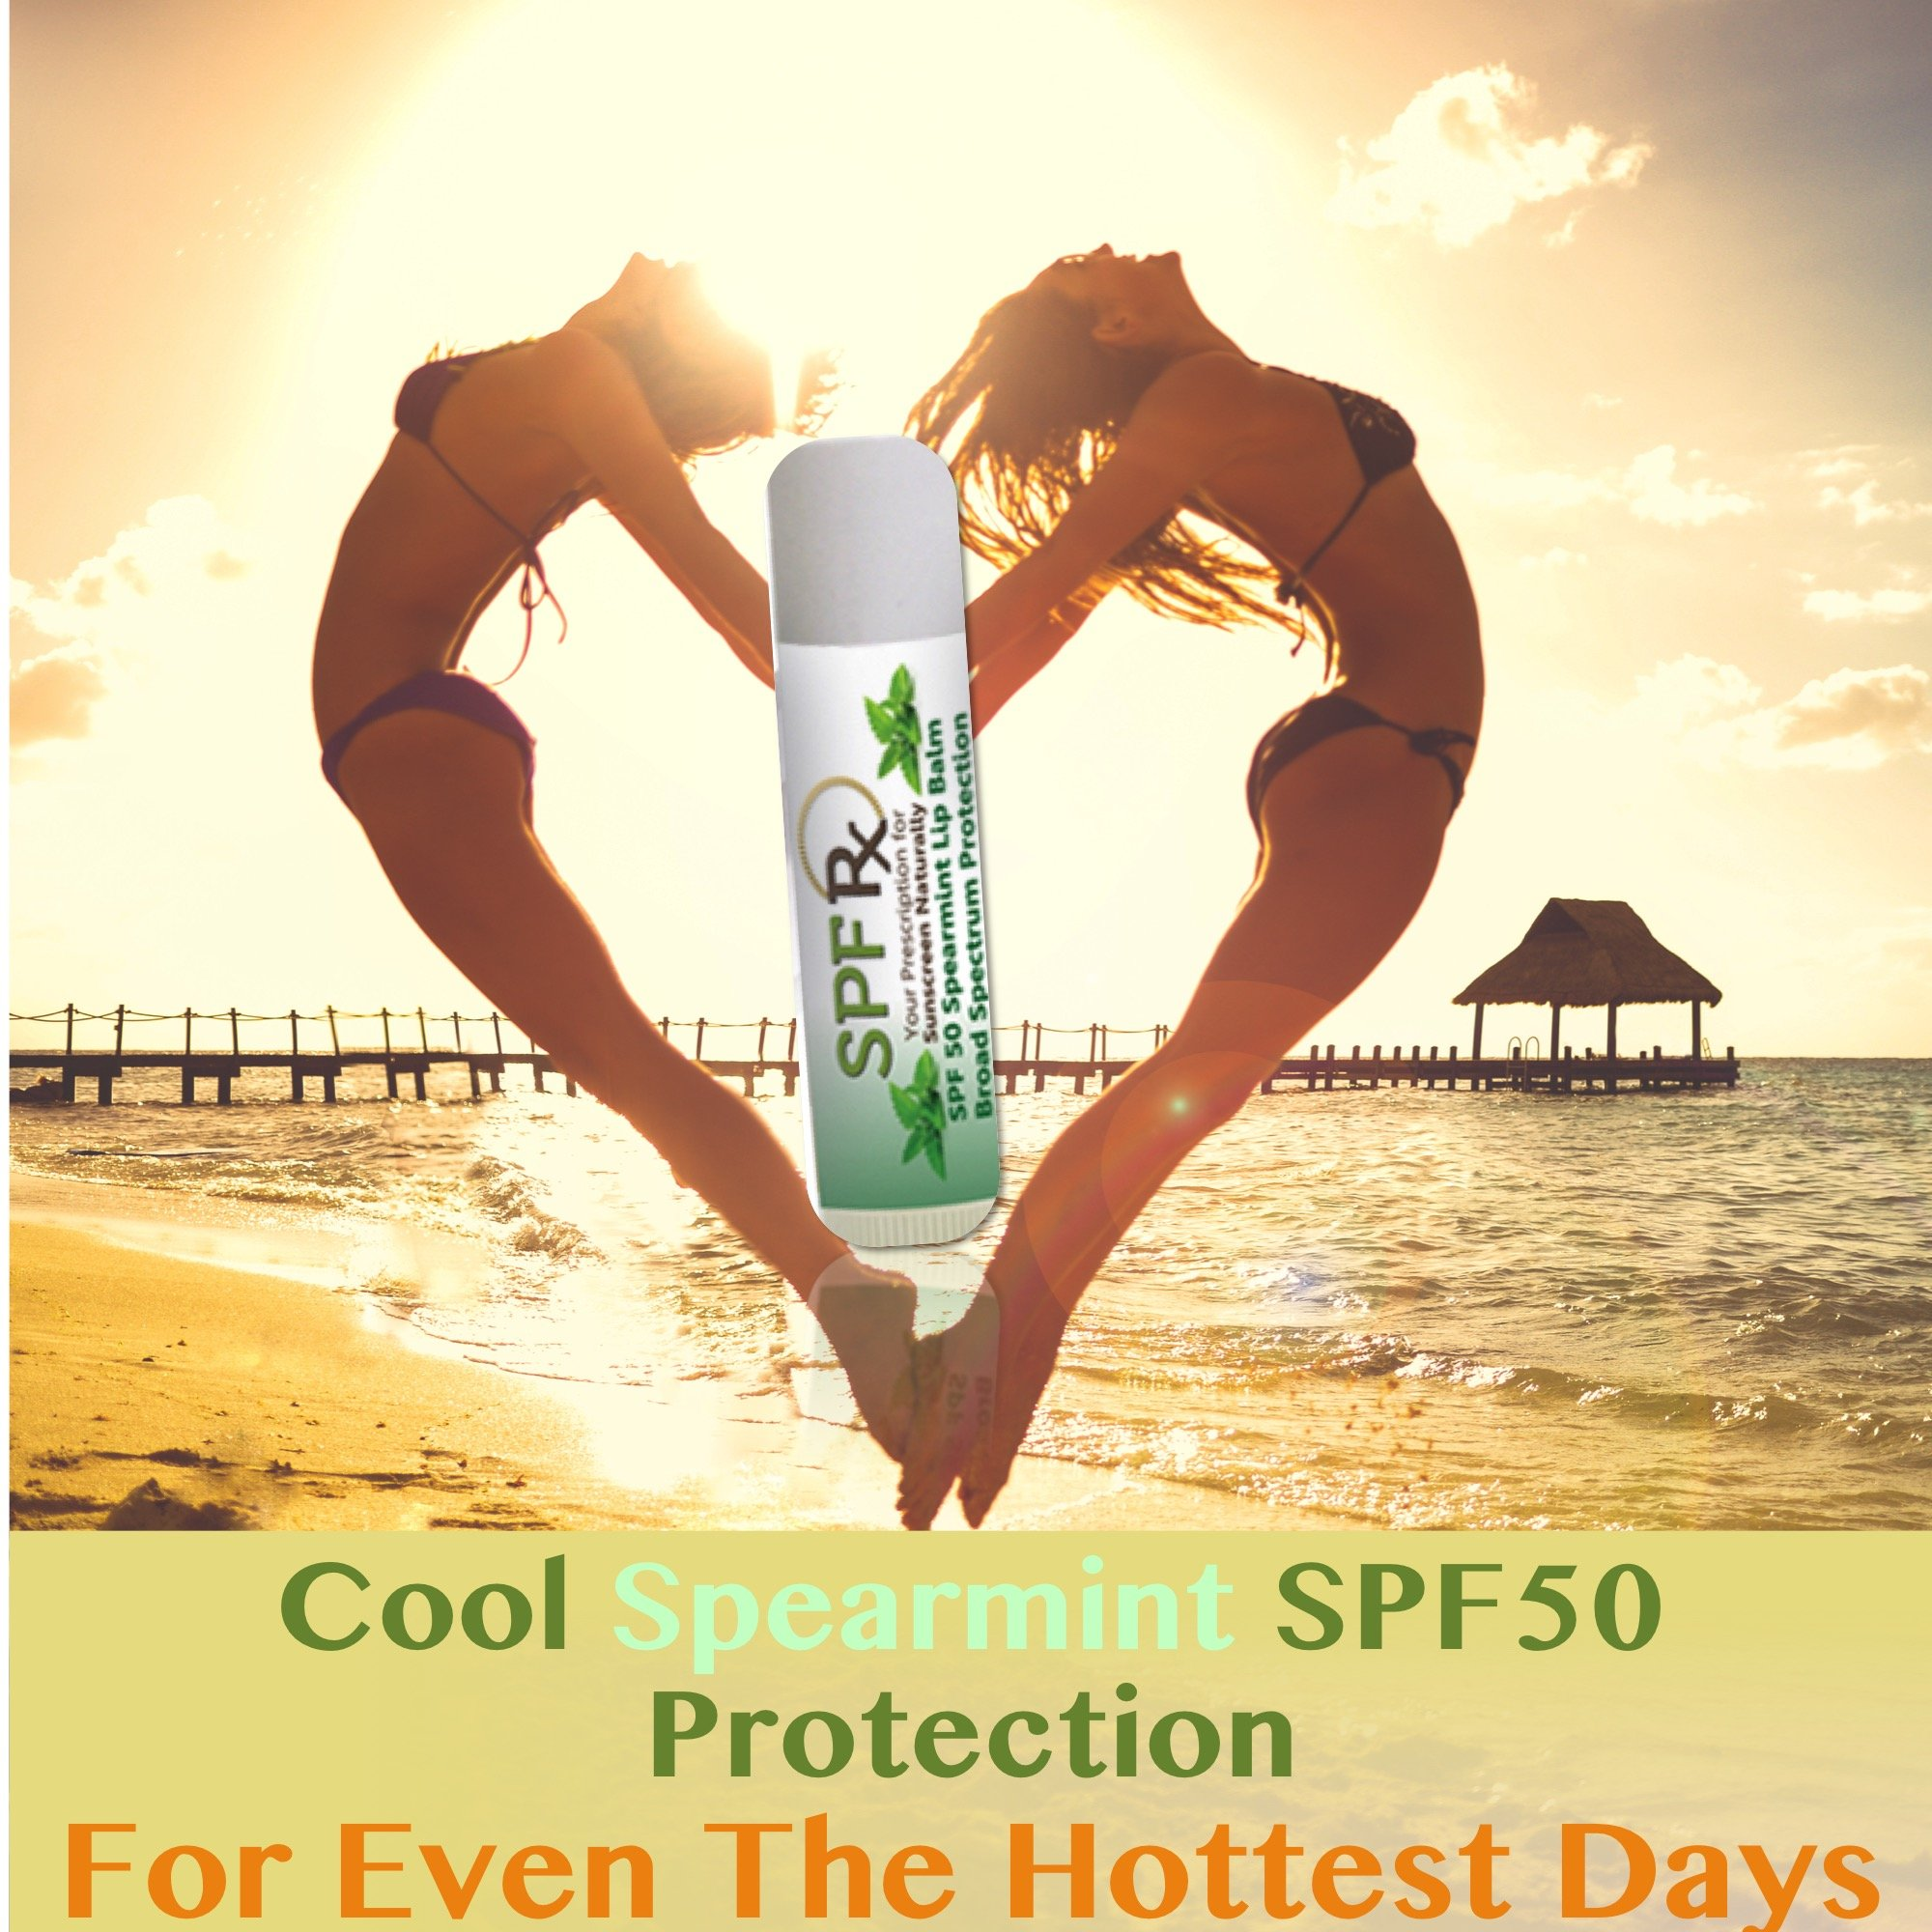 SPF 50 Spearmint Flavor Lip Balm 48 Pack - Certified Organic Protection For Both UVA & UVB Rays That Burn & Damage Your Skin & Dry Out The Lips - Zinc Based Mineral Formulation (0.15 Oz - 48 Pack)